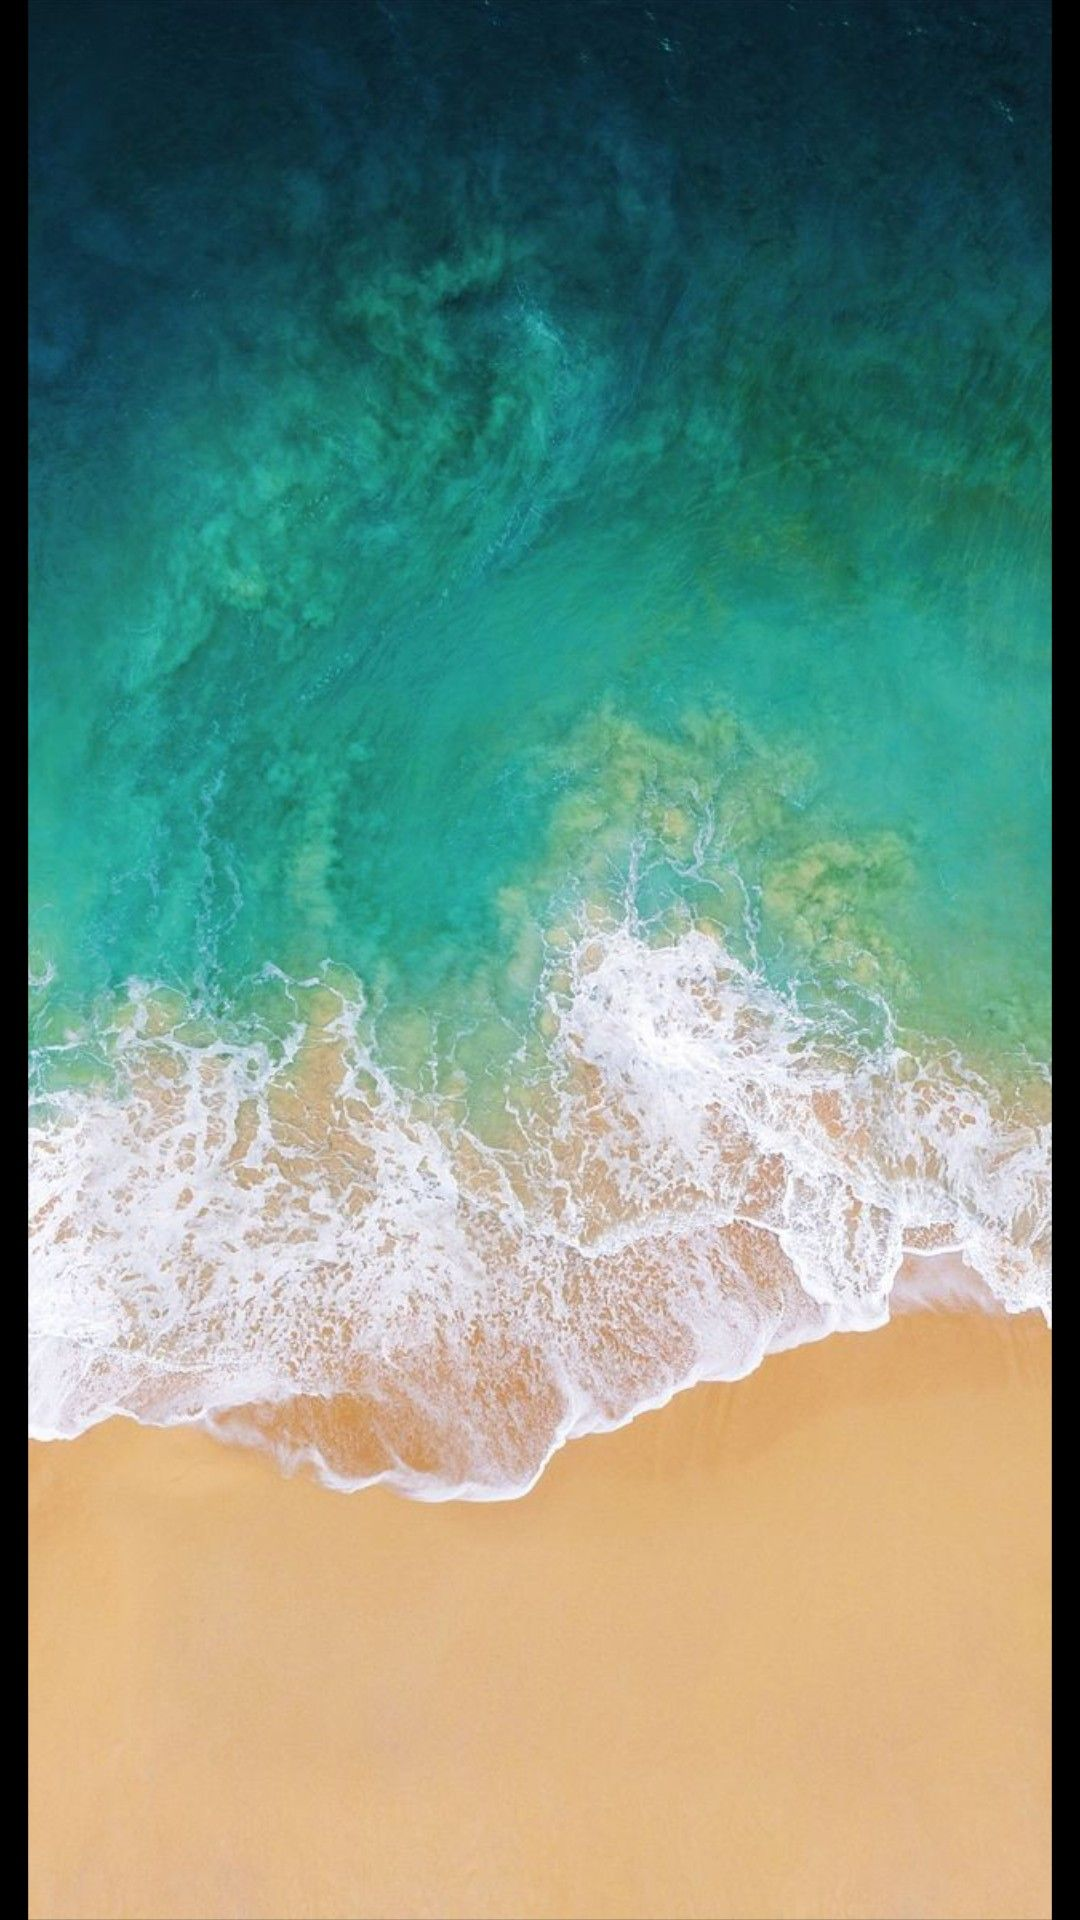 خلفيه ايفون🎇 Iphone wallpaper ocean, Ios 11 wallpaper